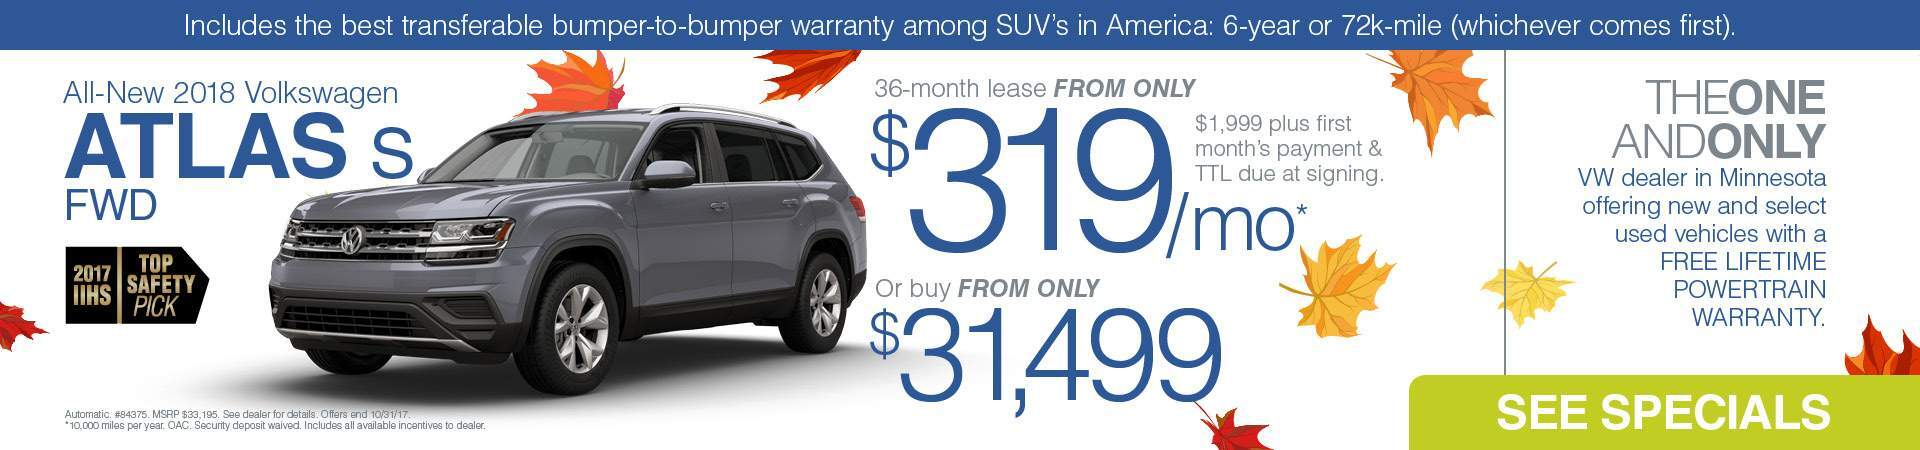 Volkswagen Inver Grove Heights   Used Cars Inver Grove Heights   Car Dealerships Inver Grove Heights